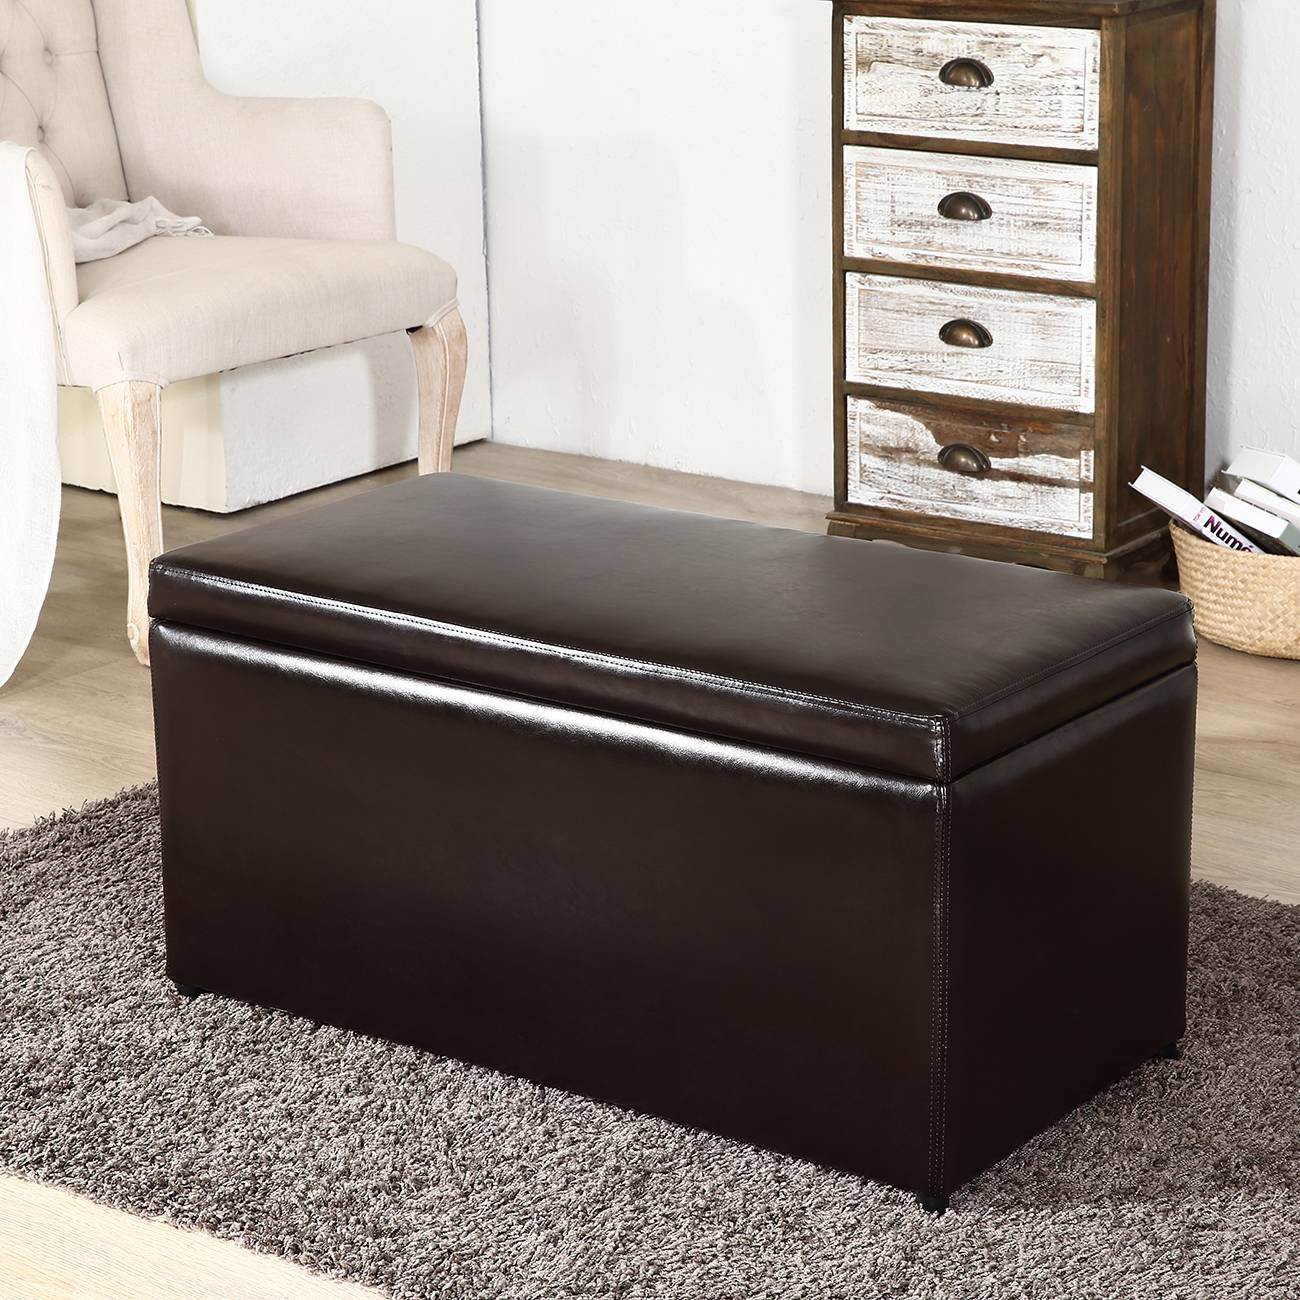 3Pc Ottoman Bench Storage Lid Tray Footrest Coffee Table Black in Coffee Table Footrests (Image 4 of 30)